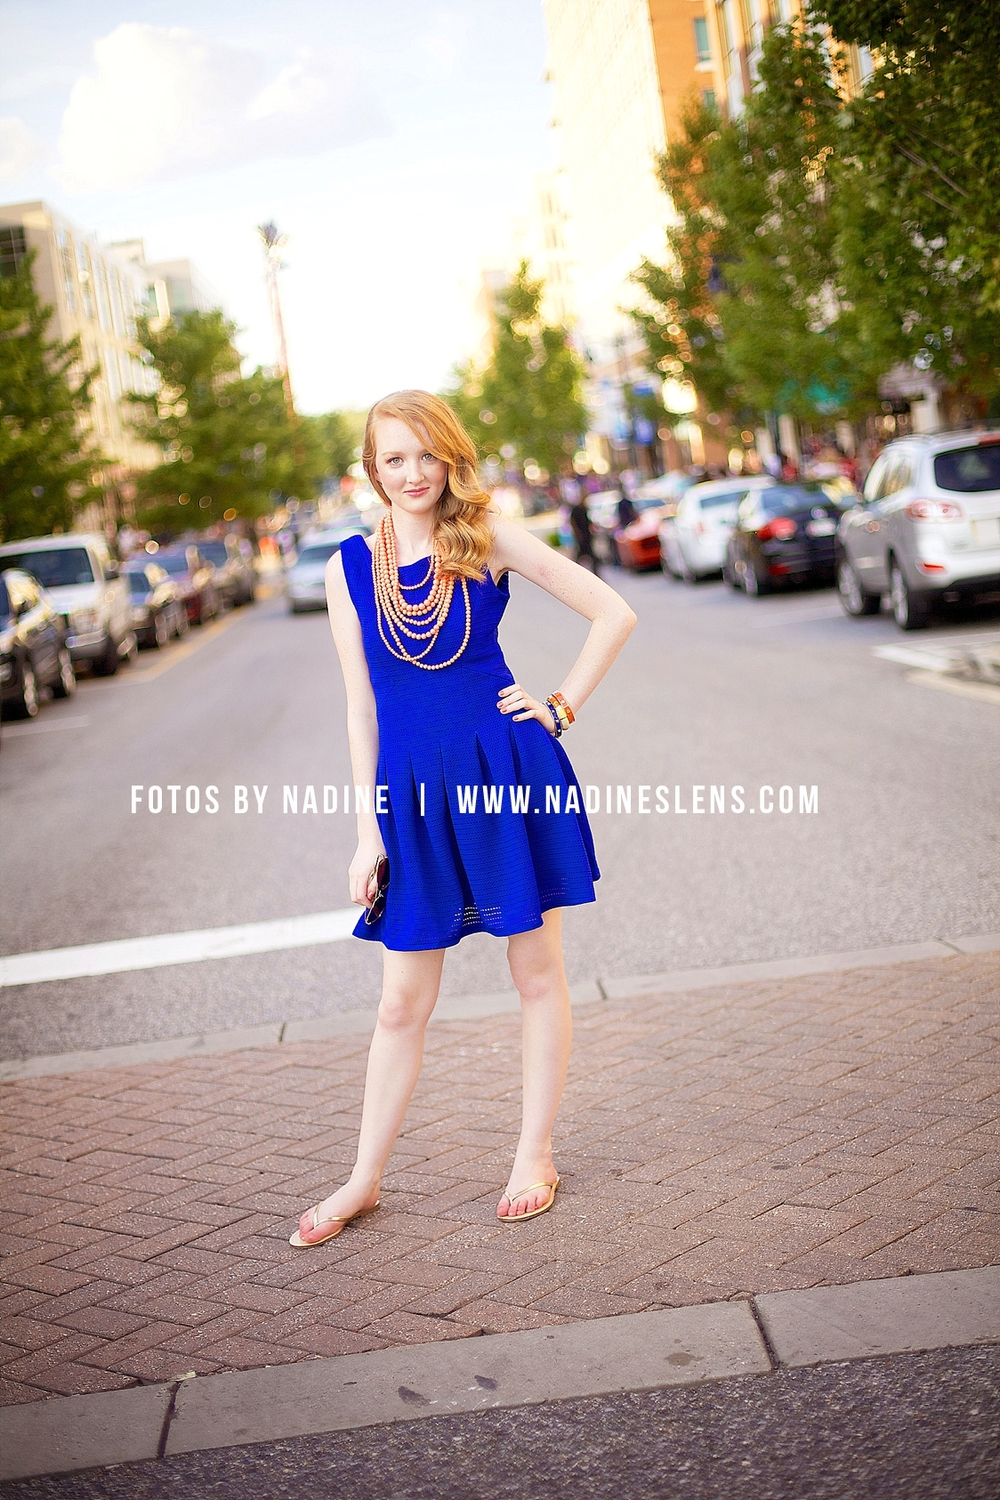 senior girl in blue dress and orange accessories from 3 sisters - fotos by nadine